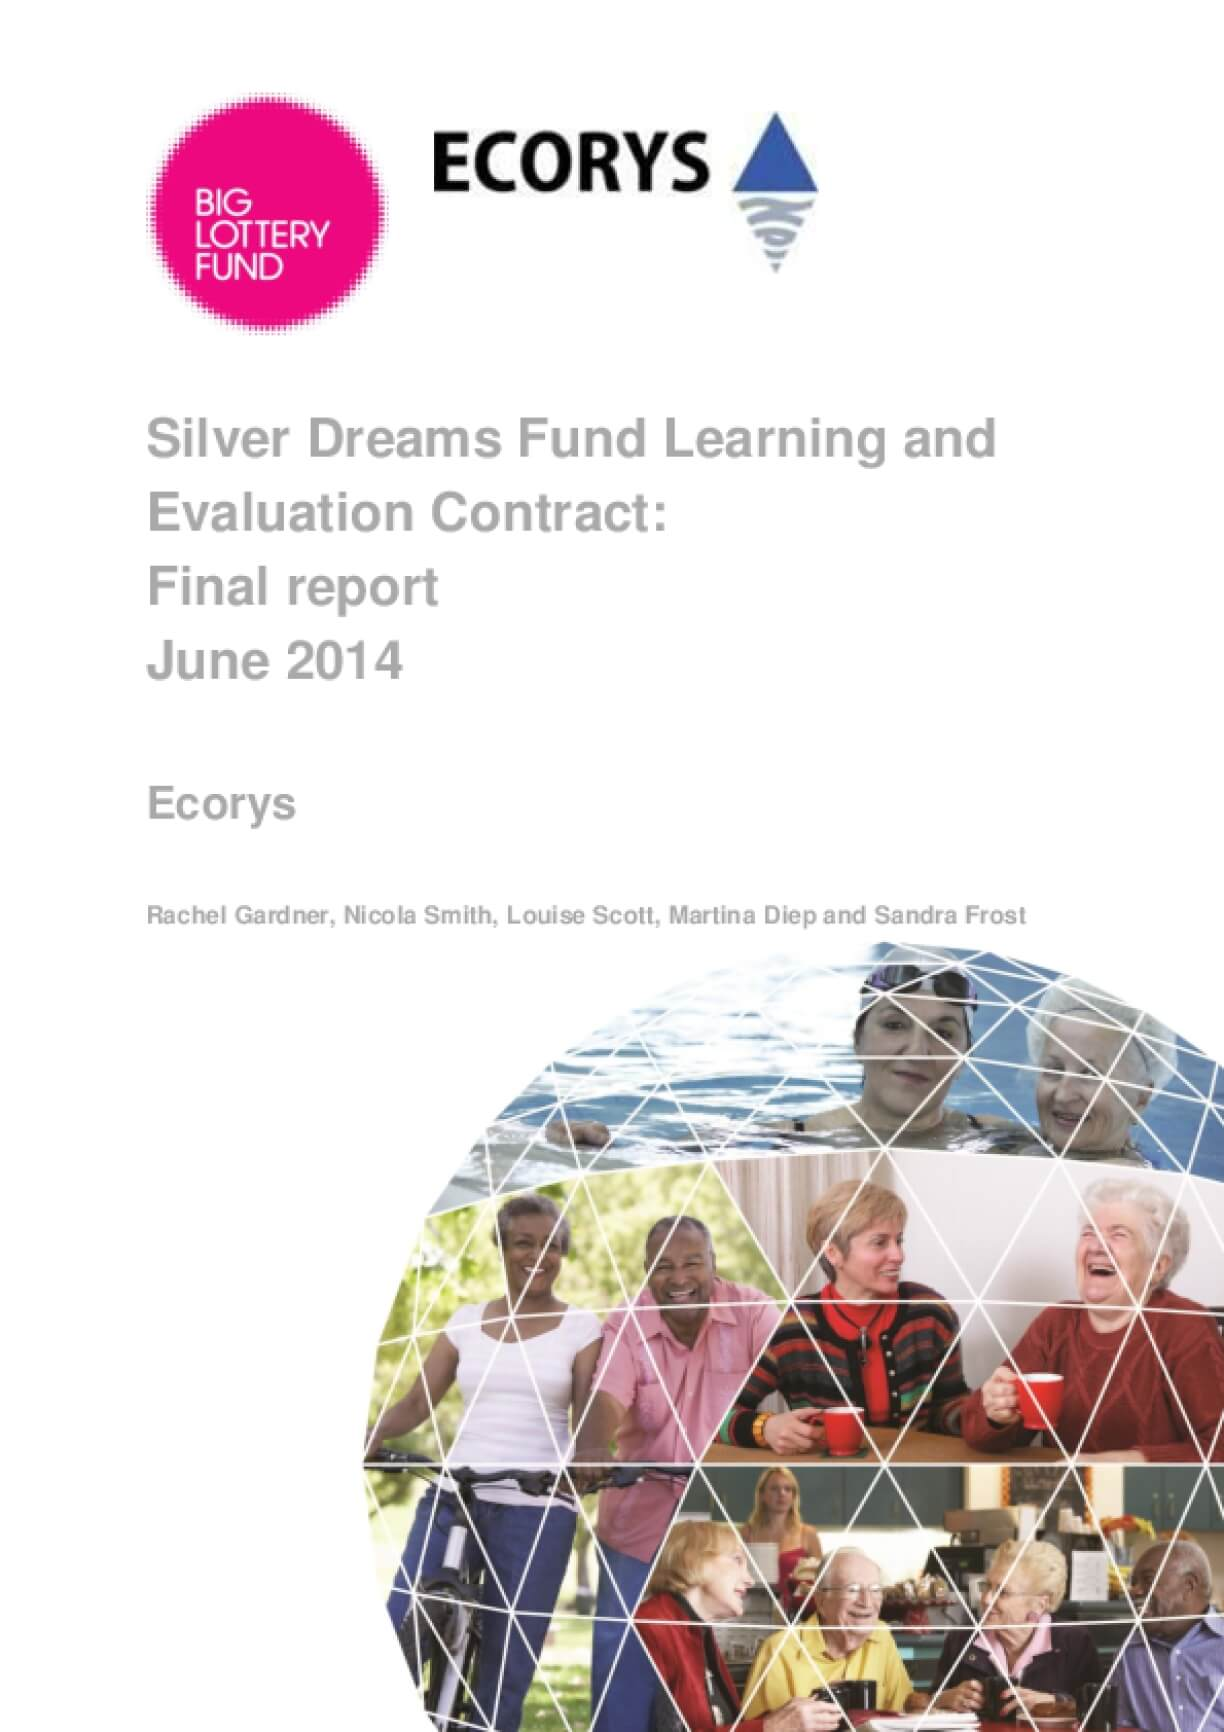 Silver Dreams Fund Learning and Evaluation Contract: Final report June 2014